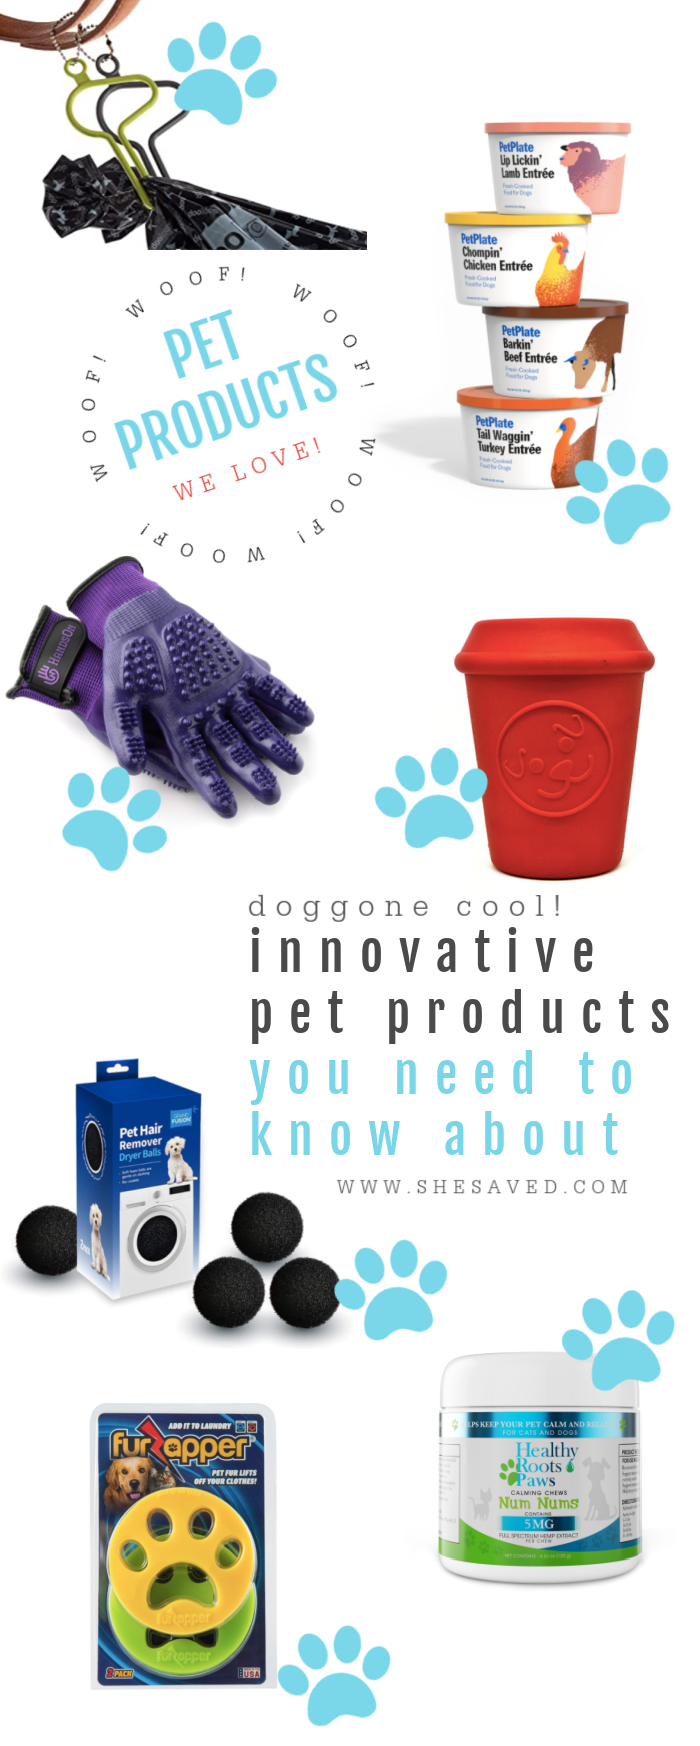 Different innovative pet products for dogs and cats